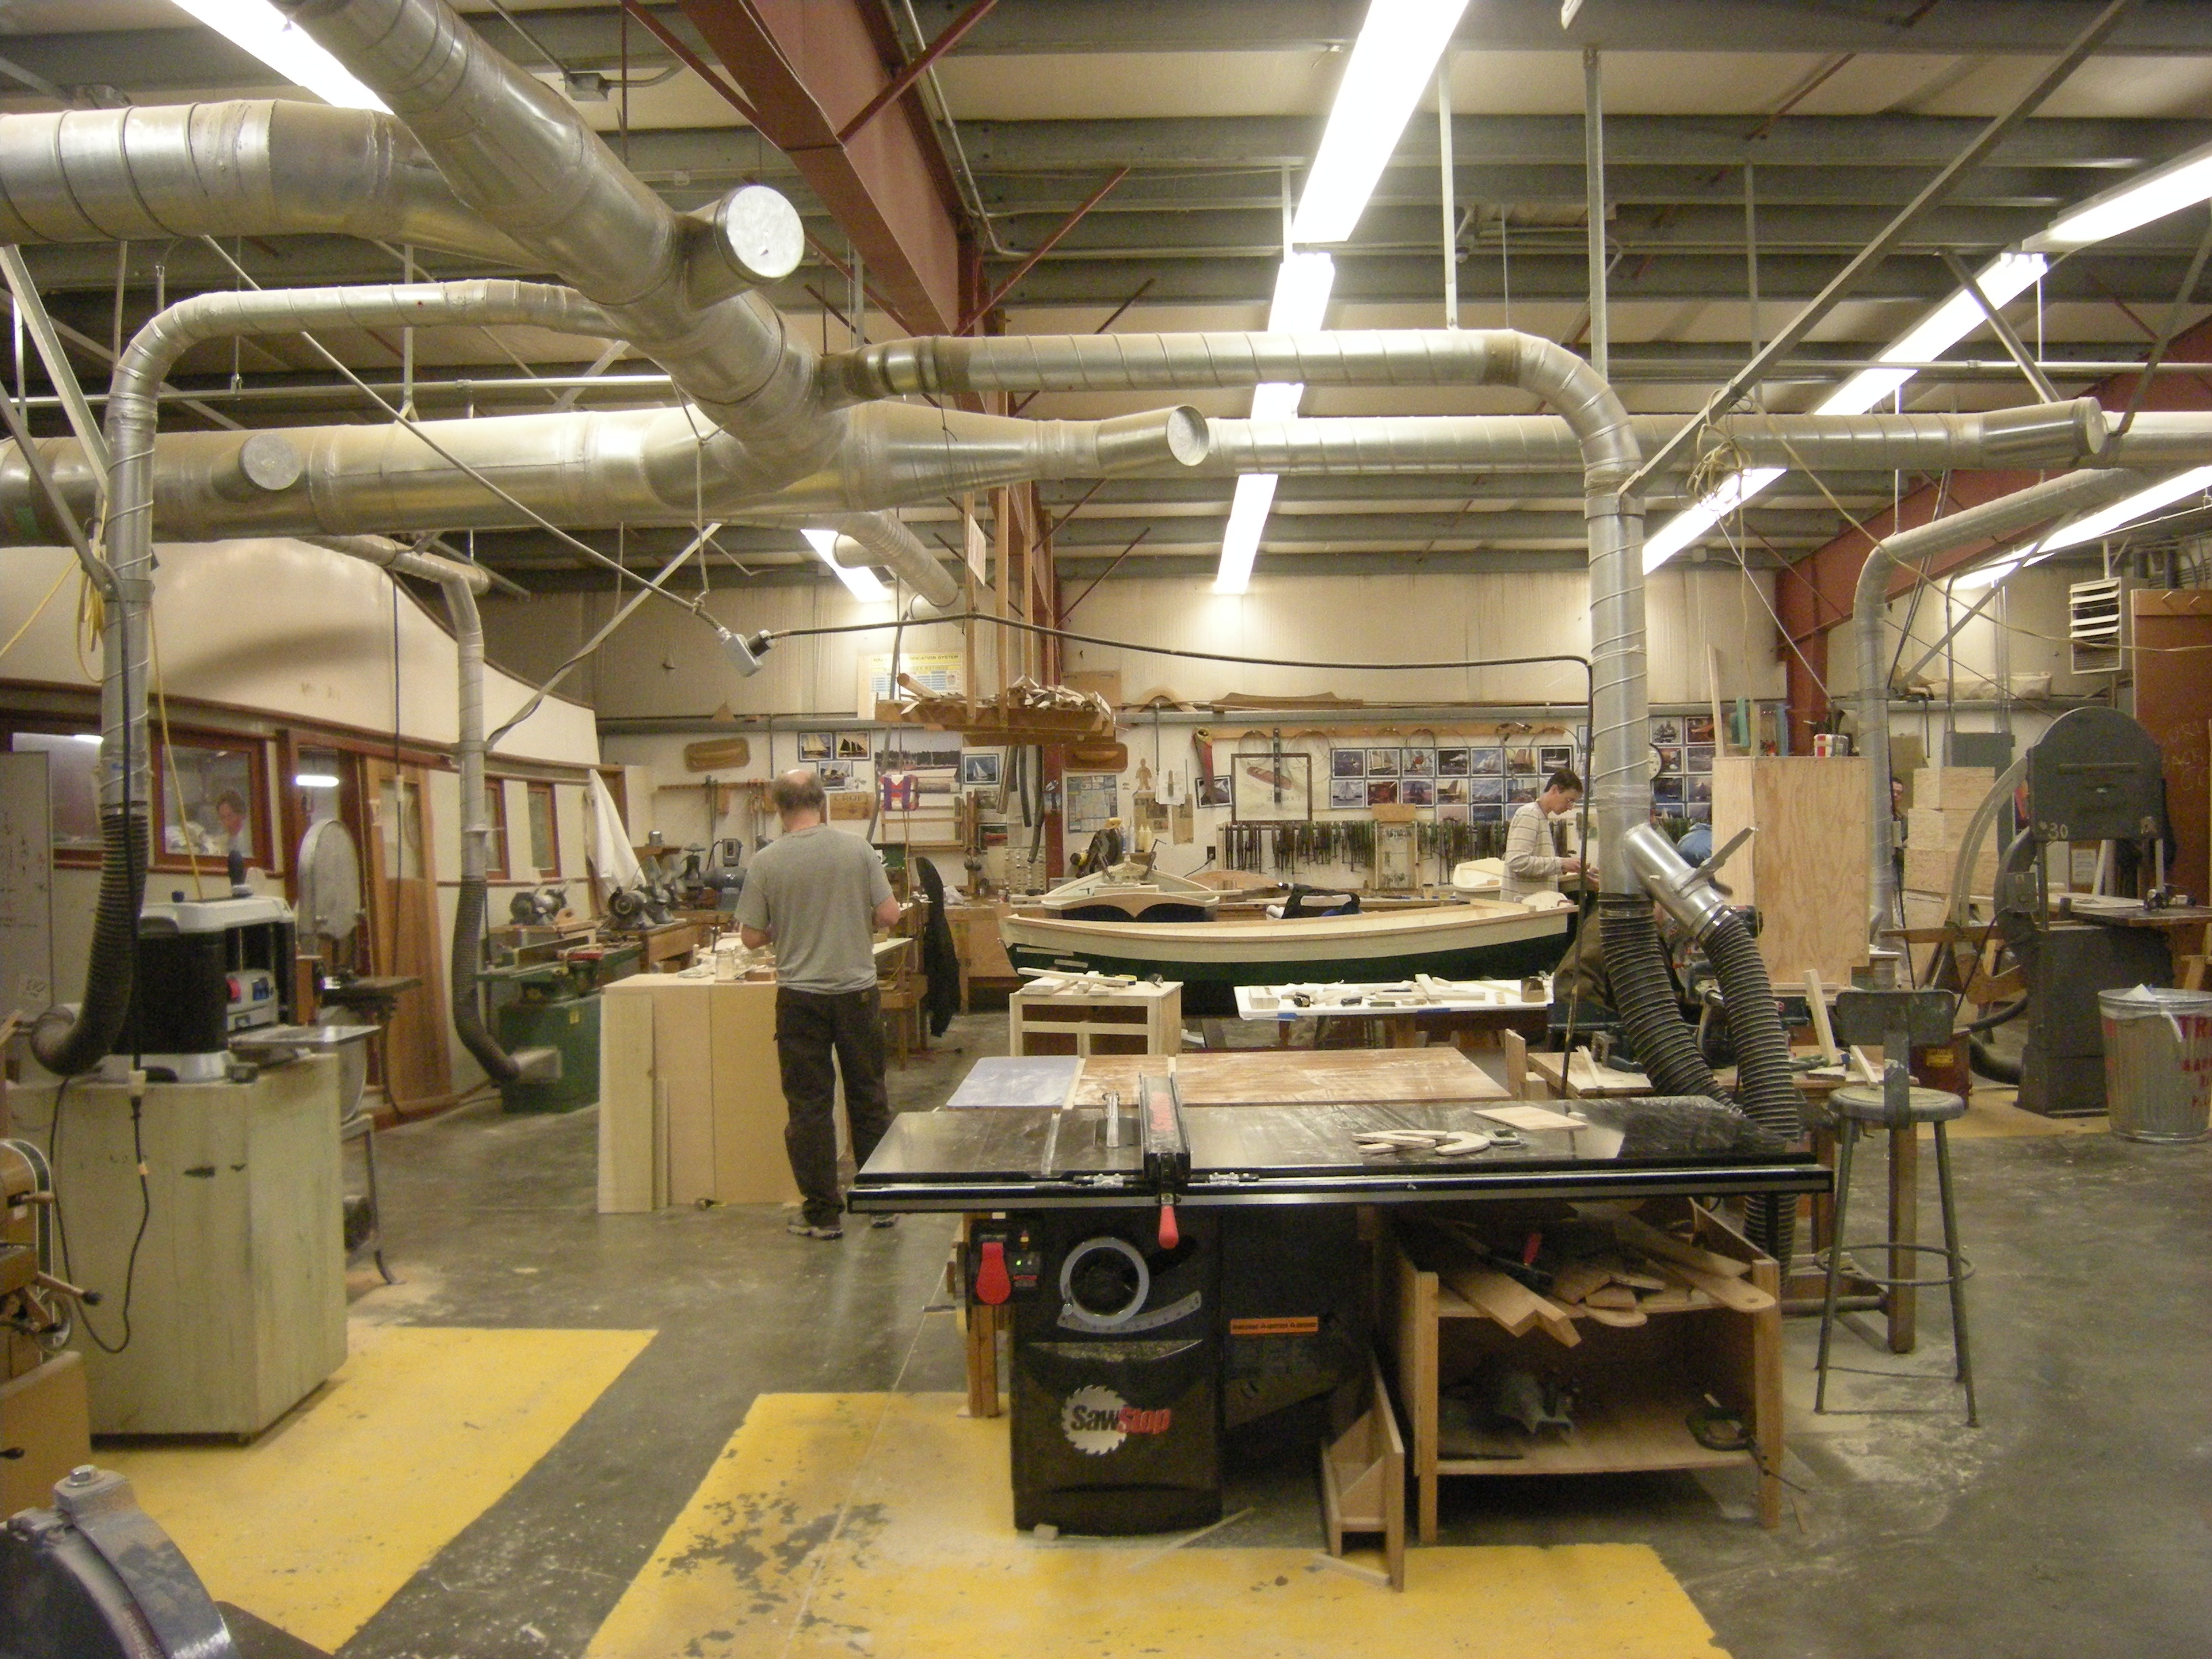 File:SCCC Wood Construction Facility - cabinetry shop 01.jpg - Wikimedia Commons